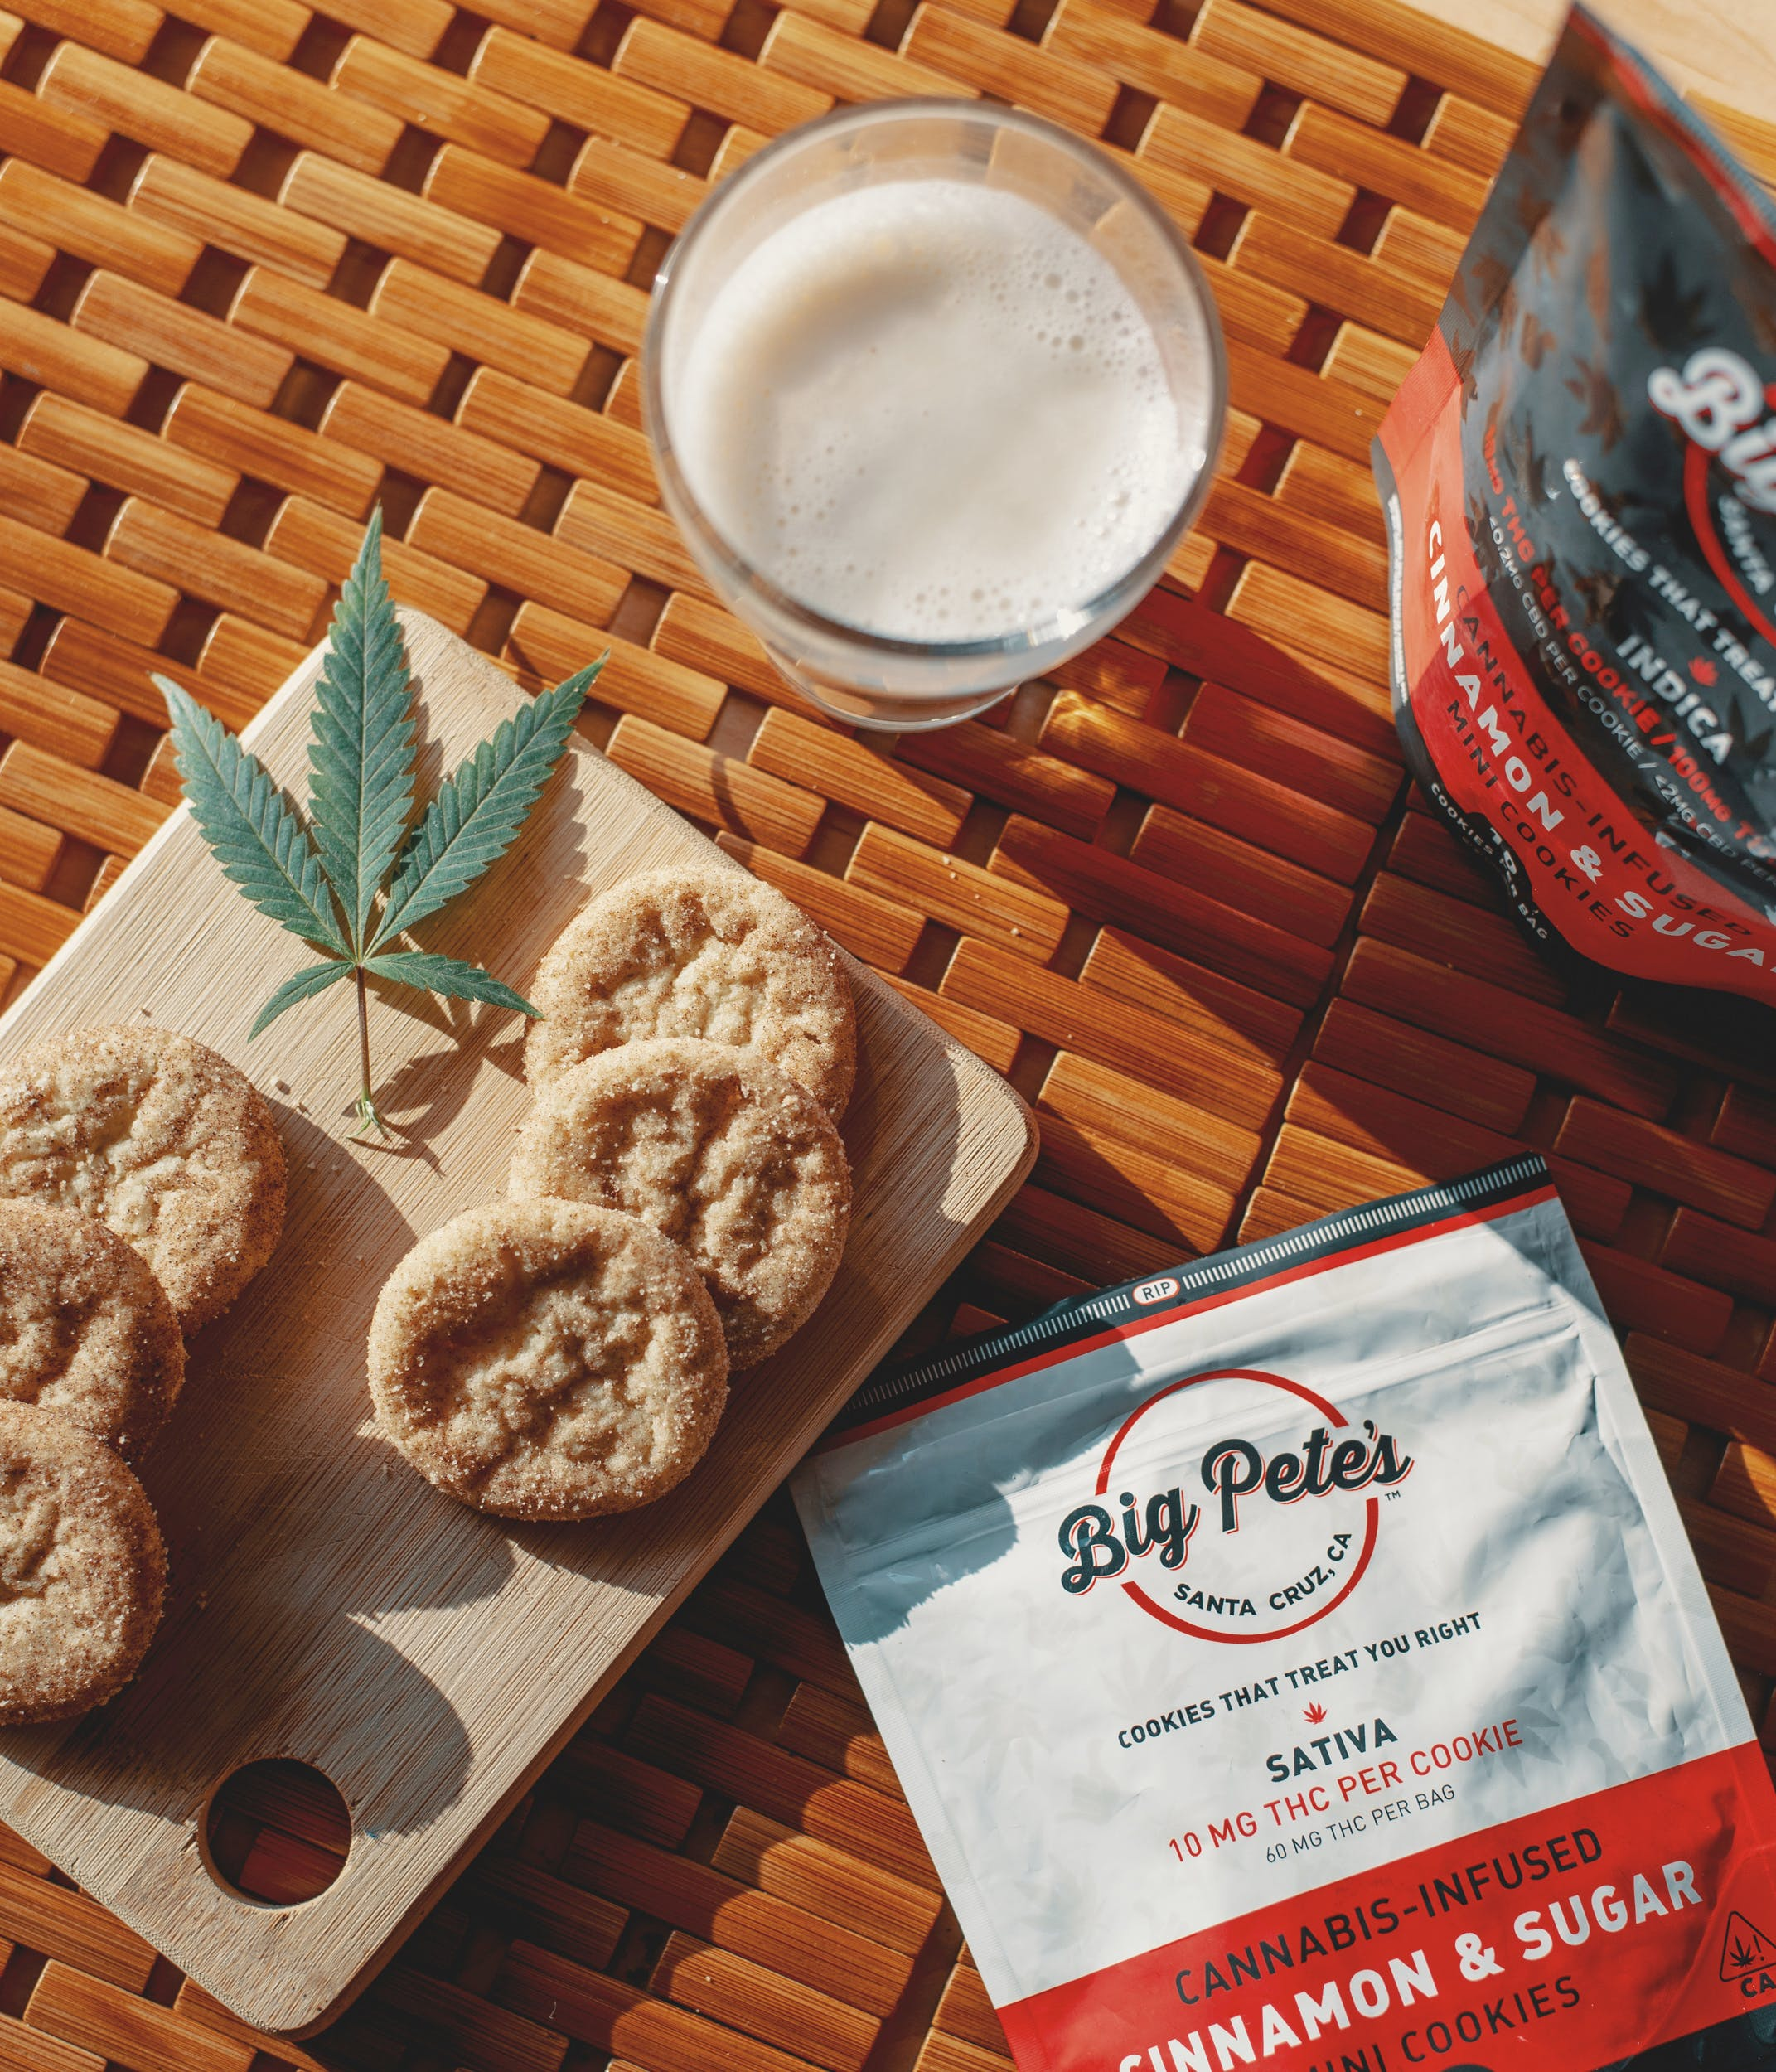 Best Weed Cookies 9 These Are The Best Weed Cookies Weve Ever Tried